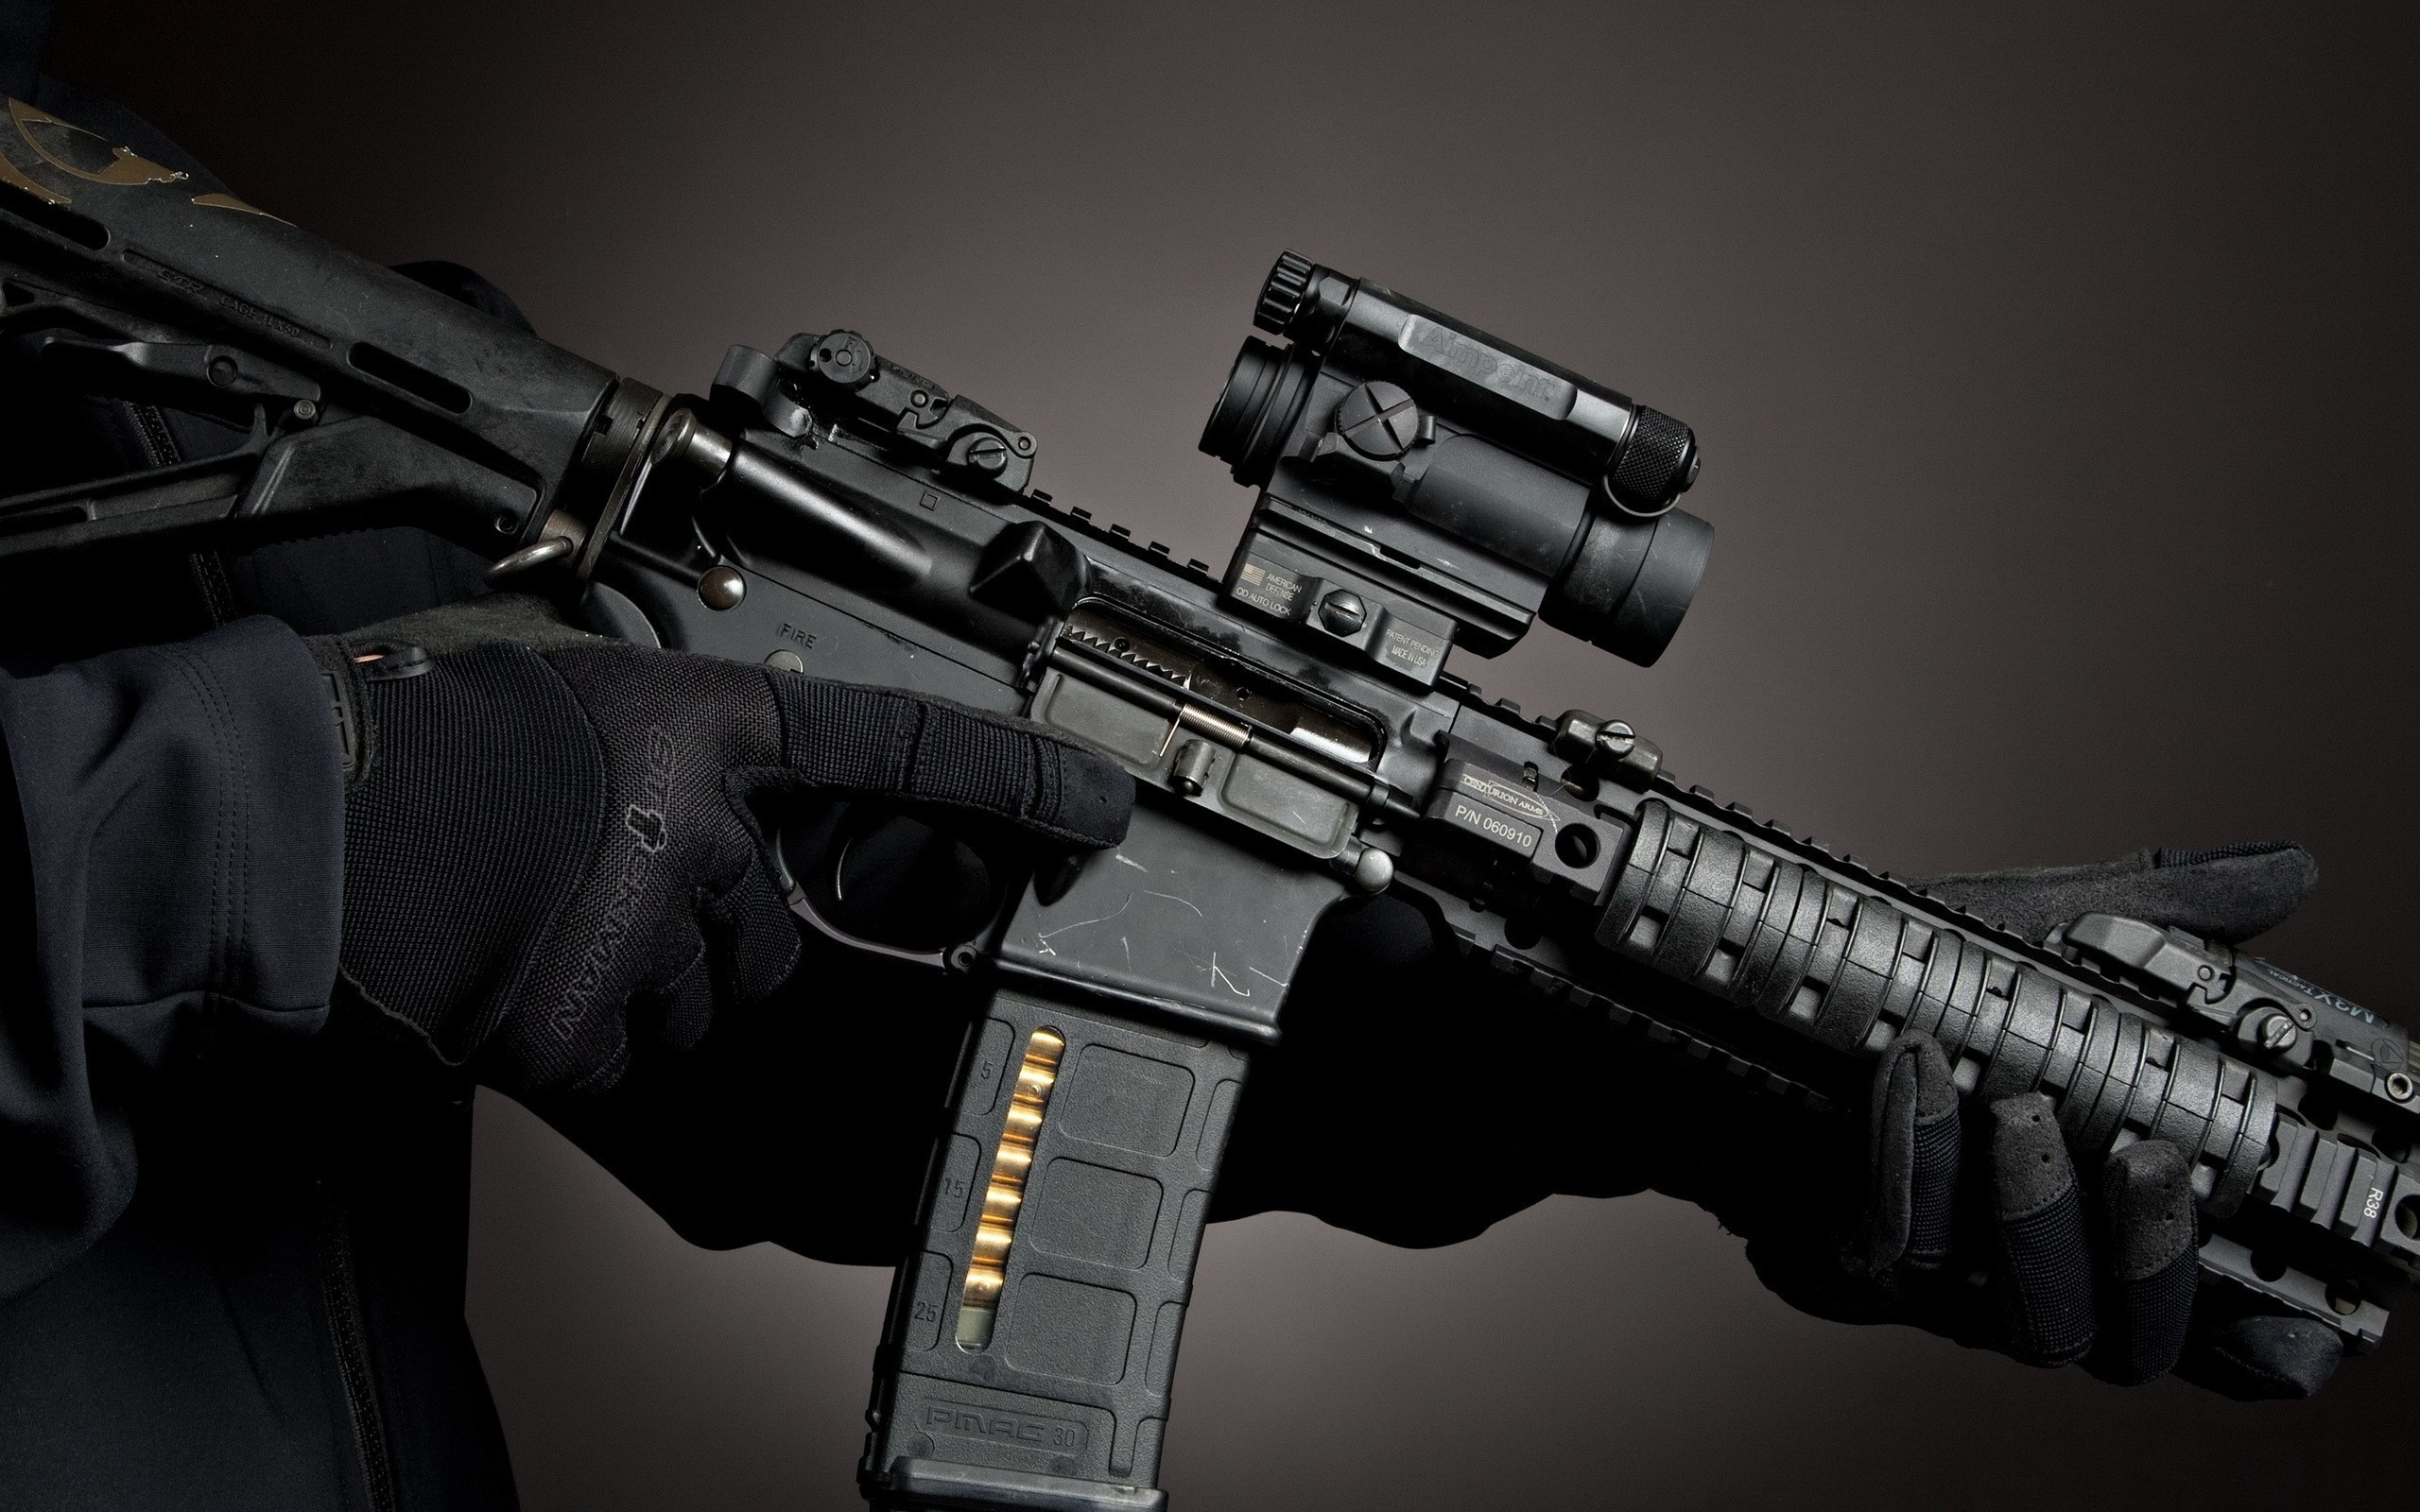 2560x1600 Magpul AR-15 Aimpoint comp m4  Wallpaper